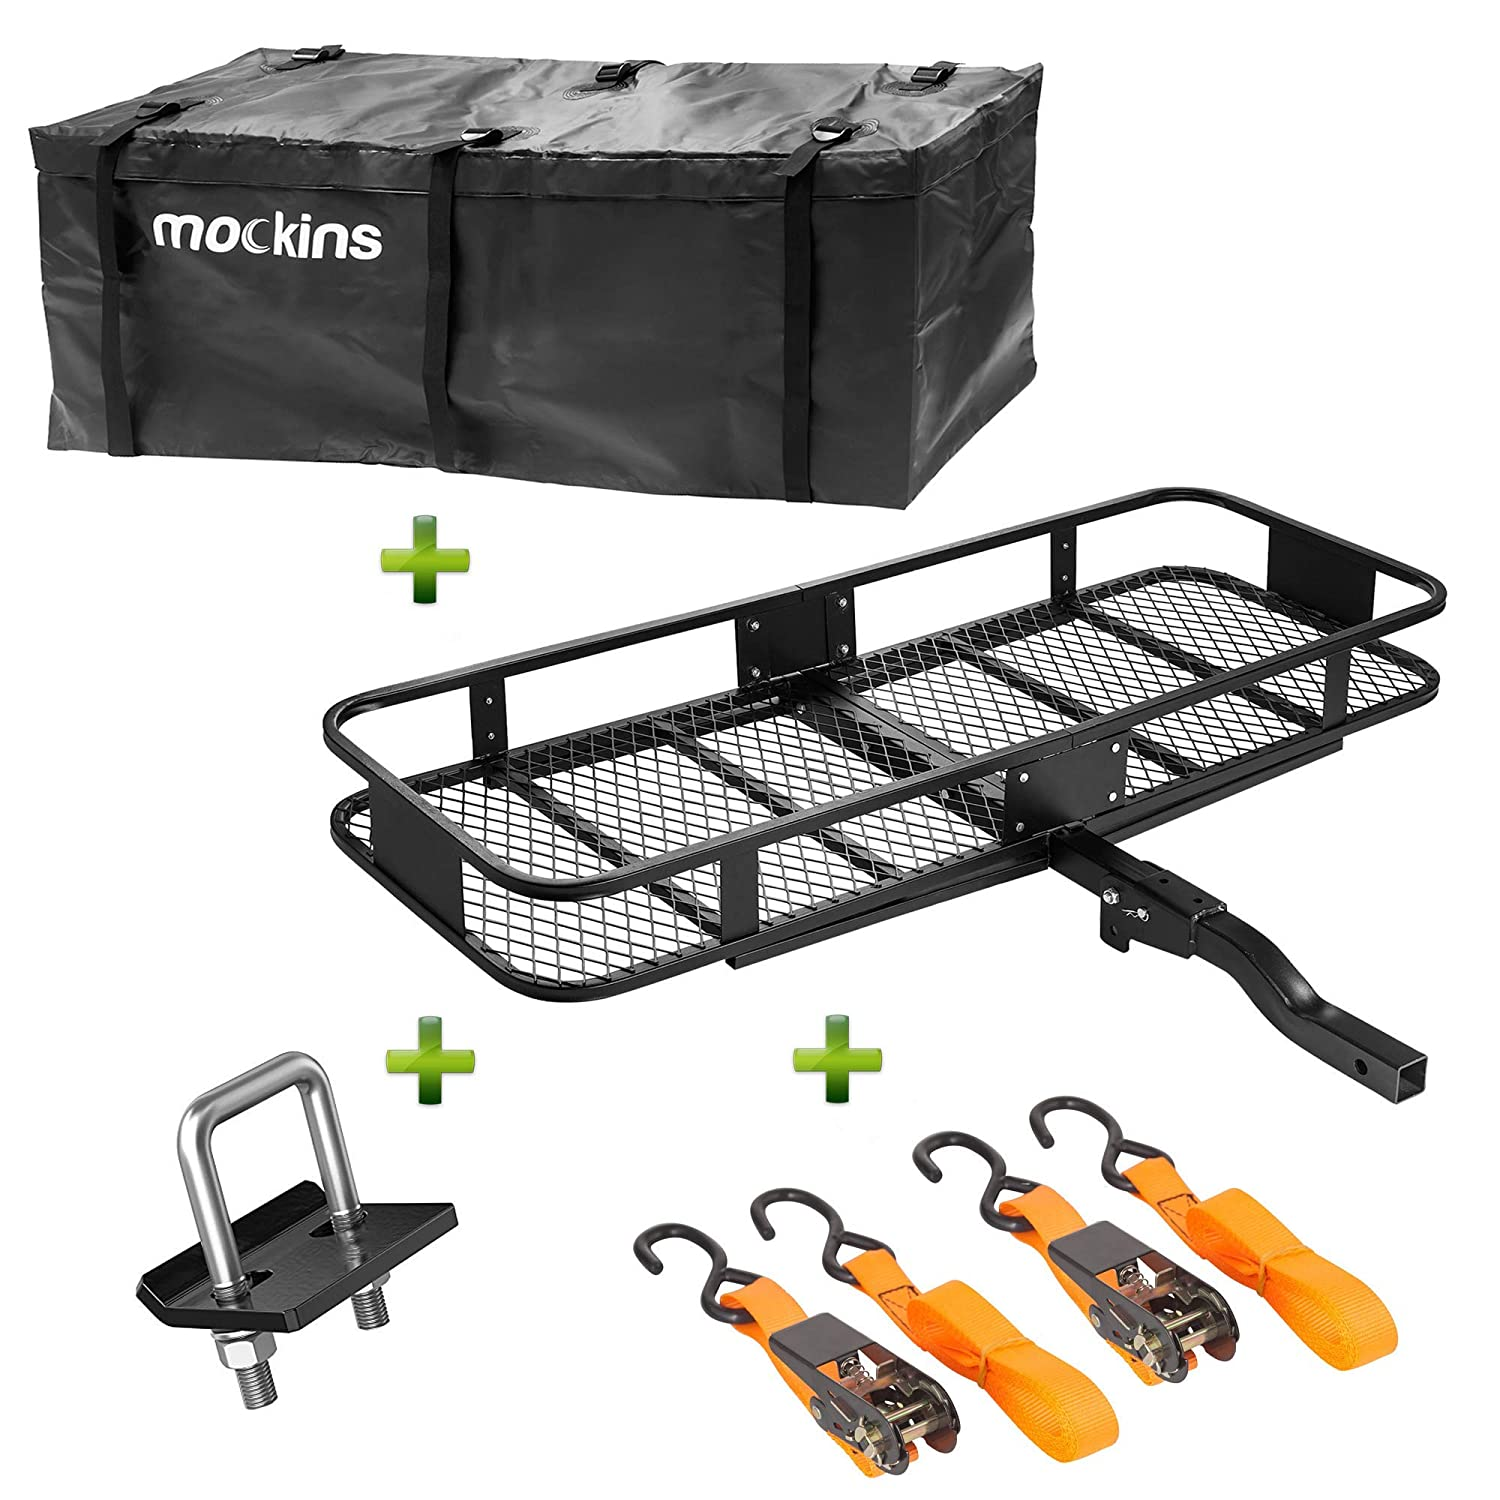 "Mockins Hitch Mount Cargo Carrier | The Steel Cargo Basket is 60"" Long X 20' Wide X 6"" Tall with A Hauling Weight Capacity of 500 Lbs and A Folding Shank to Preserve Space When Not in Use"